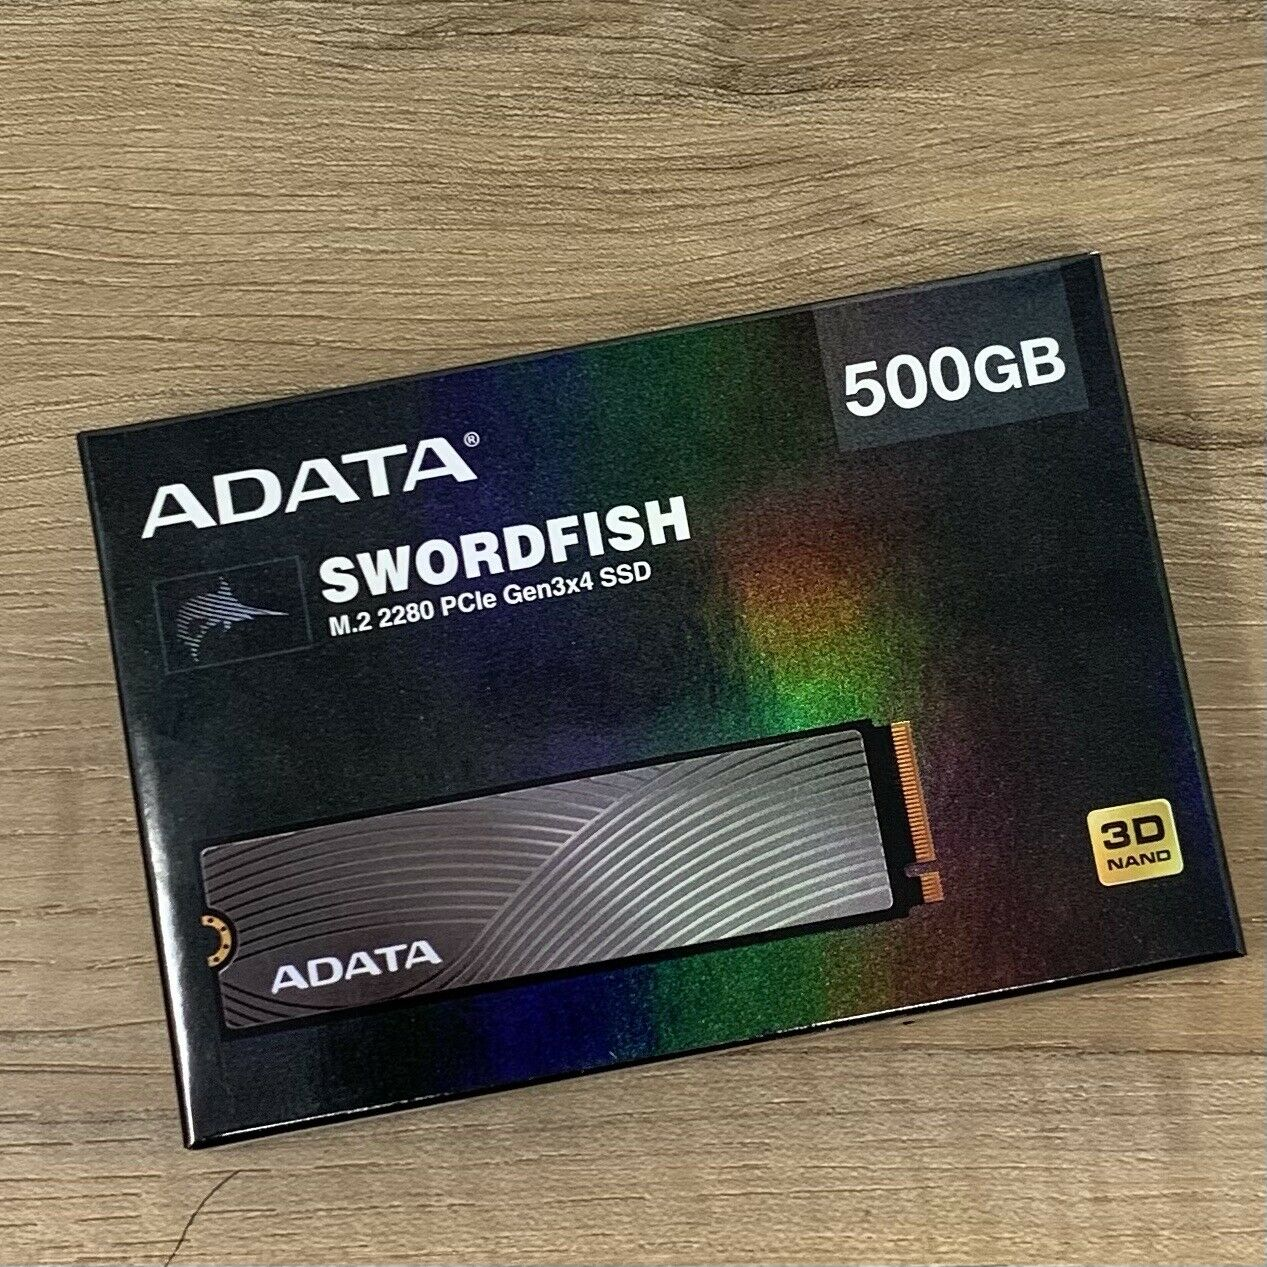 ADATA Swordfish PCIe NVMe Gen3x4 M.2 2280 Solid State Drive 500GB - Sealed New. Buy it now for 50.00